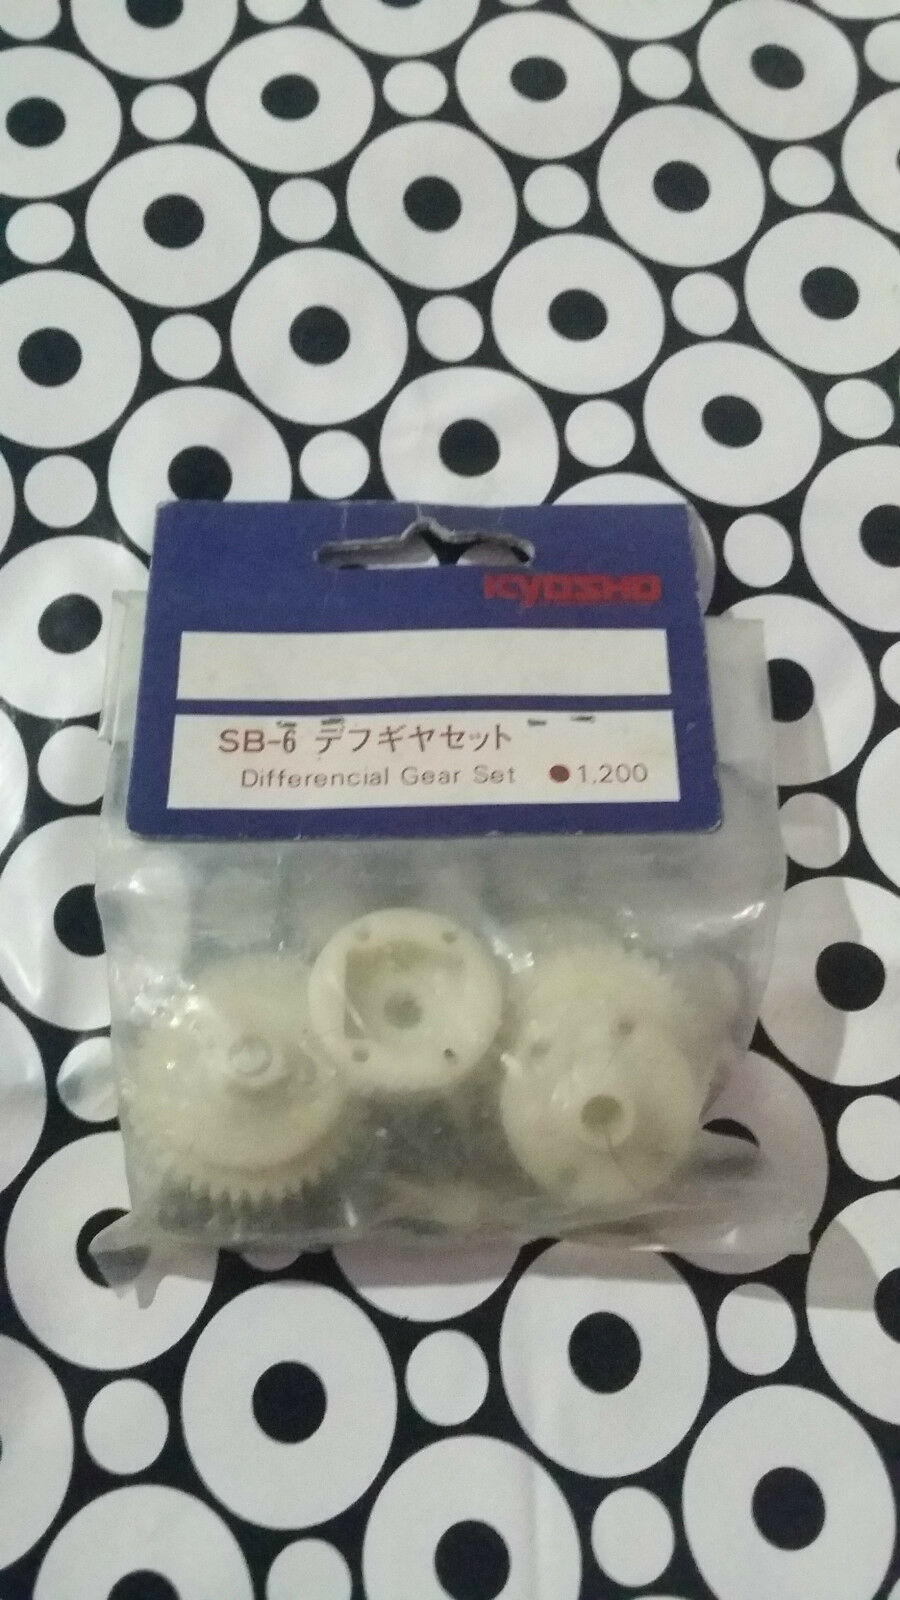 KYOSHO SB-6 DIFFERENCIAL GEAR SET     OFFERS ARE WELCOME